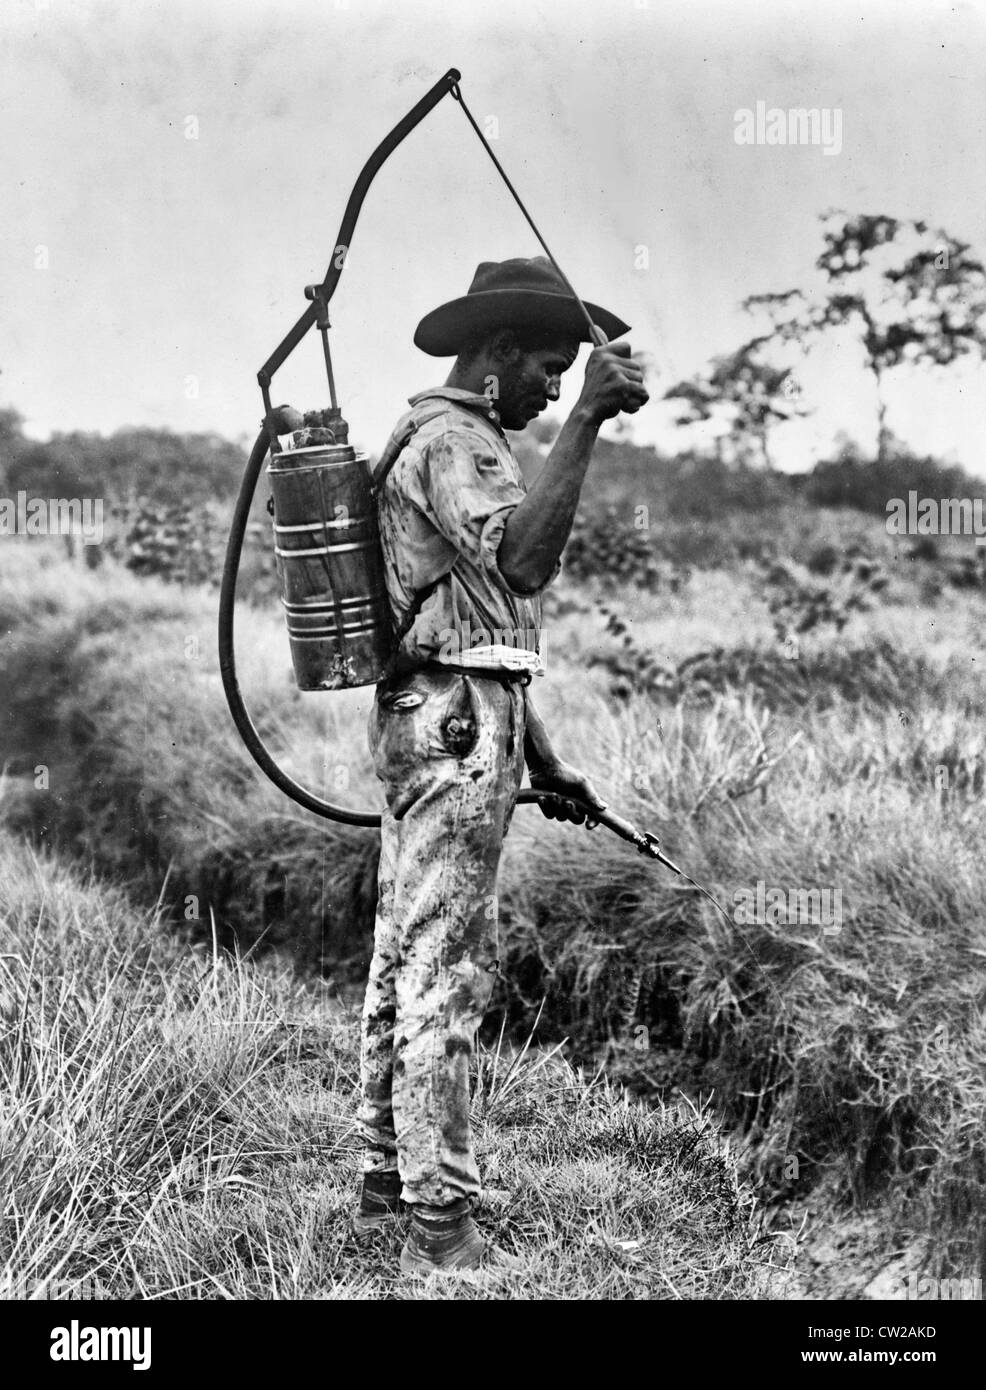 Panama - Spraying oil on breeding places of mosquitoes A man with a cannister of oil on  back spraying liquid onto - Stock Image